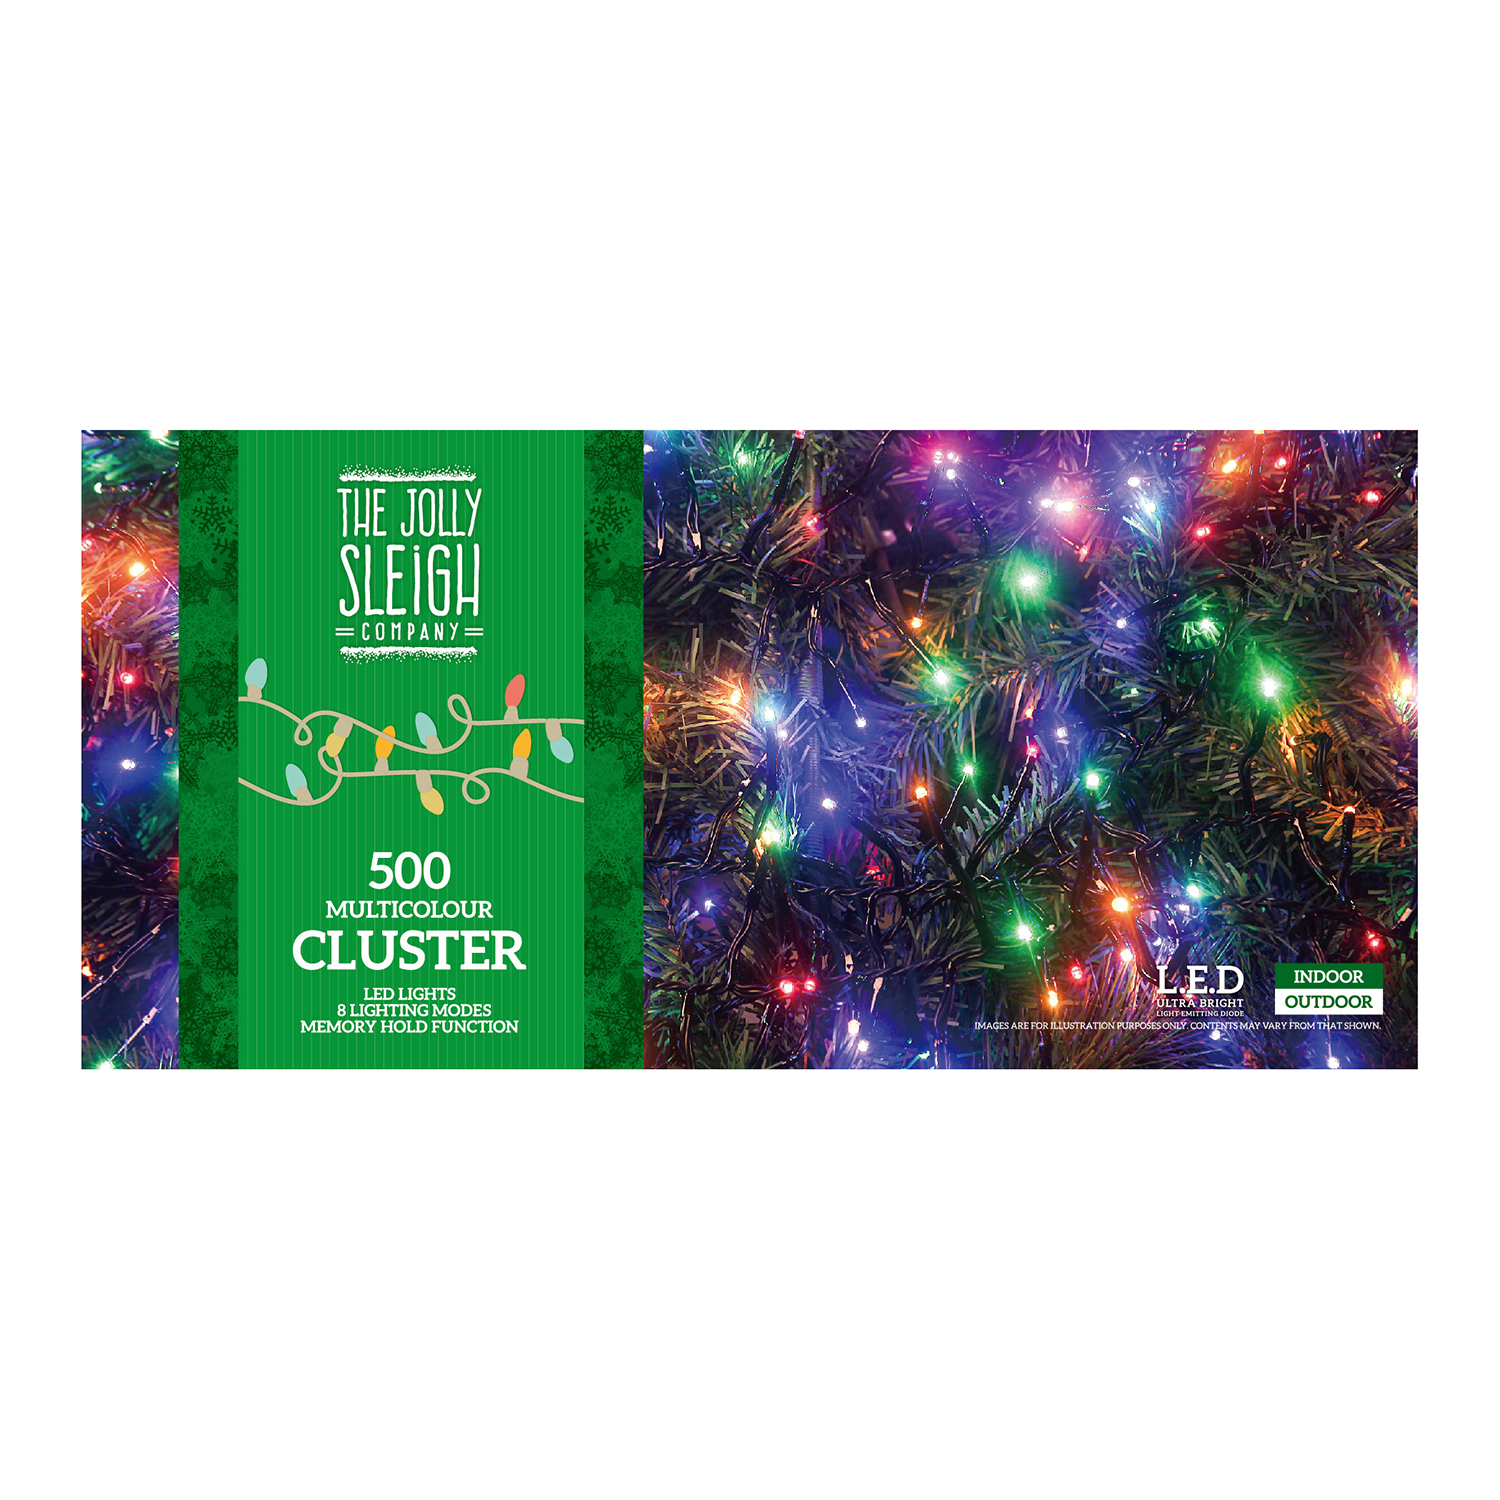 500 Multicolour Led Cluster Lights Home Store More Multi Colour Tap To Expand